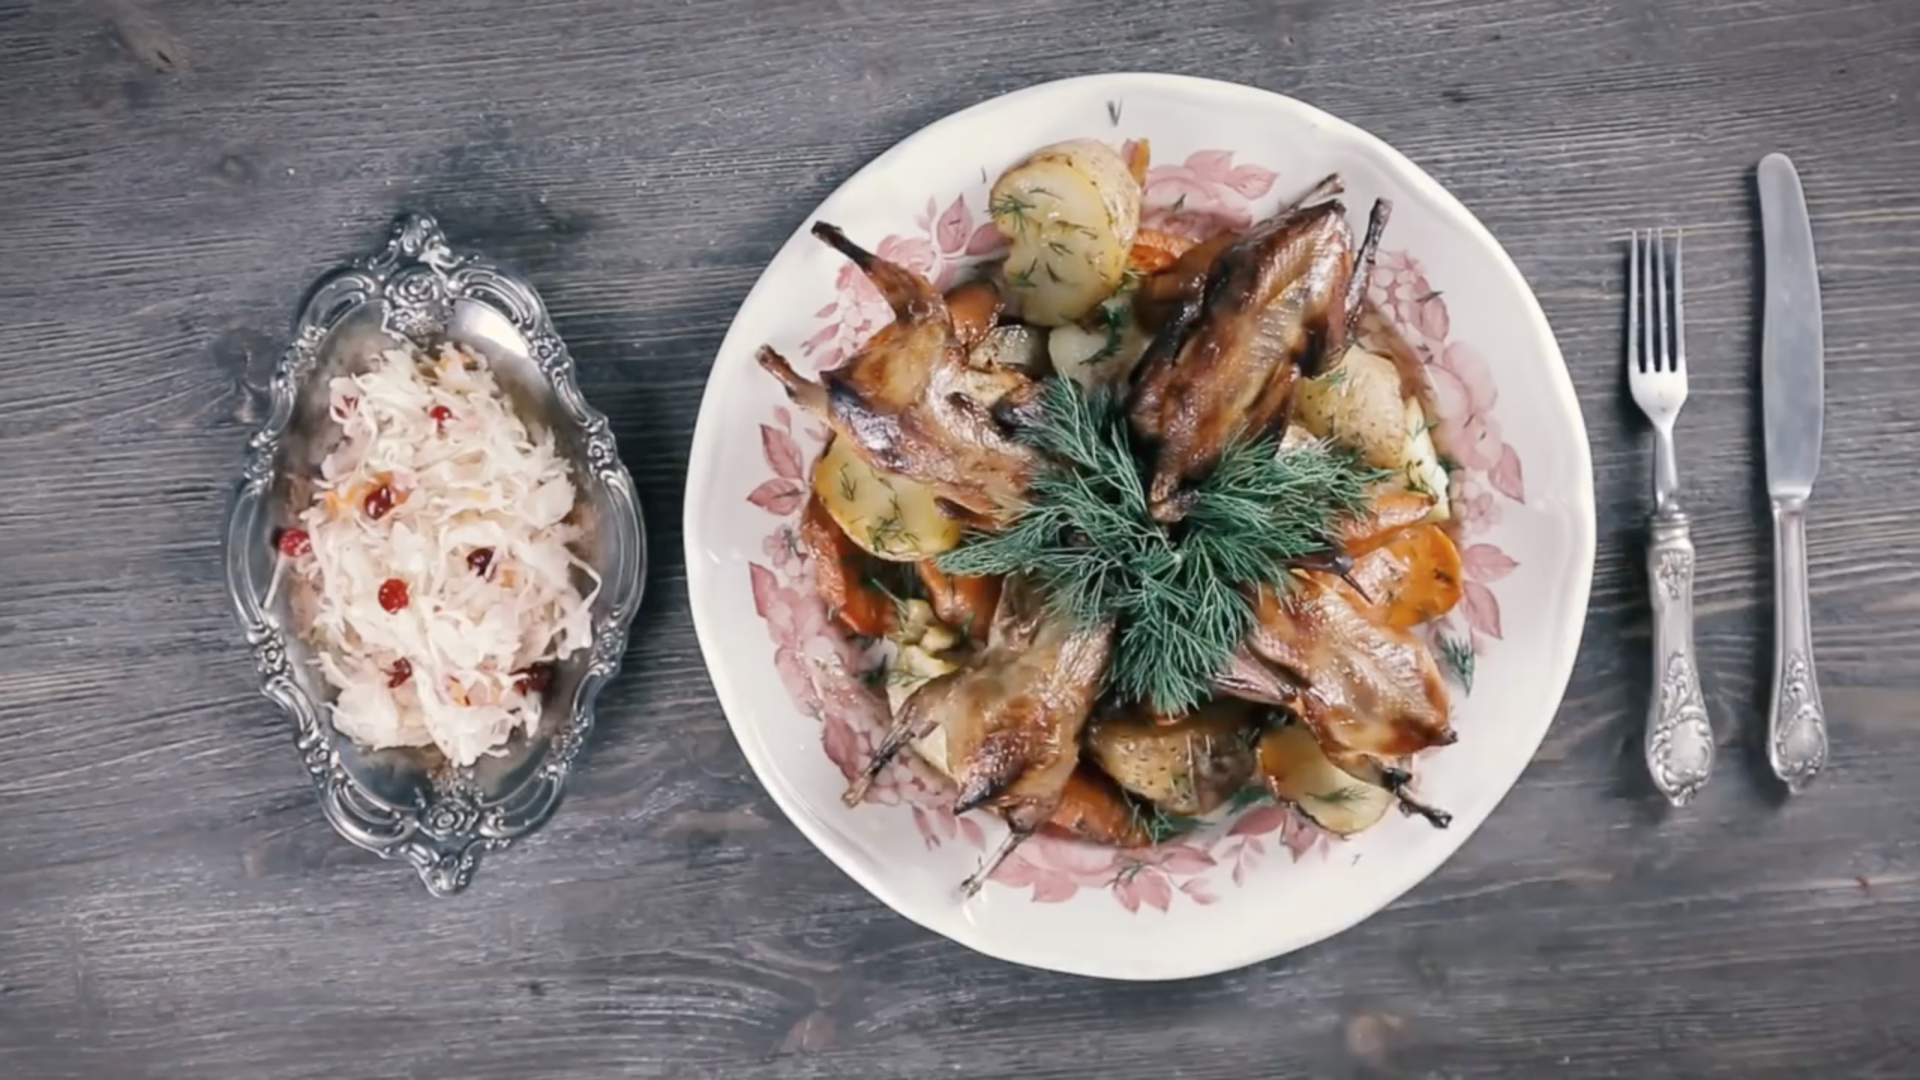 100 years of Russian cuisine